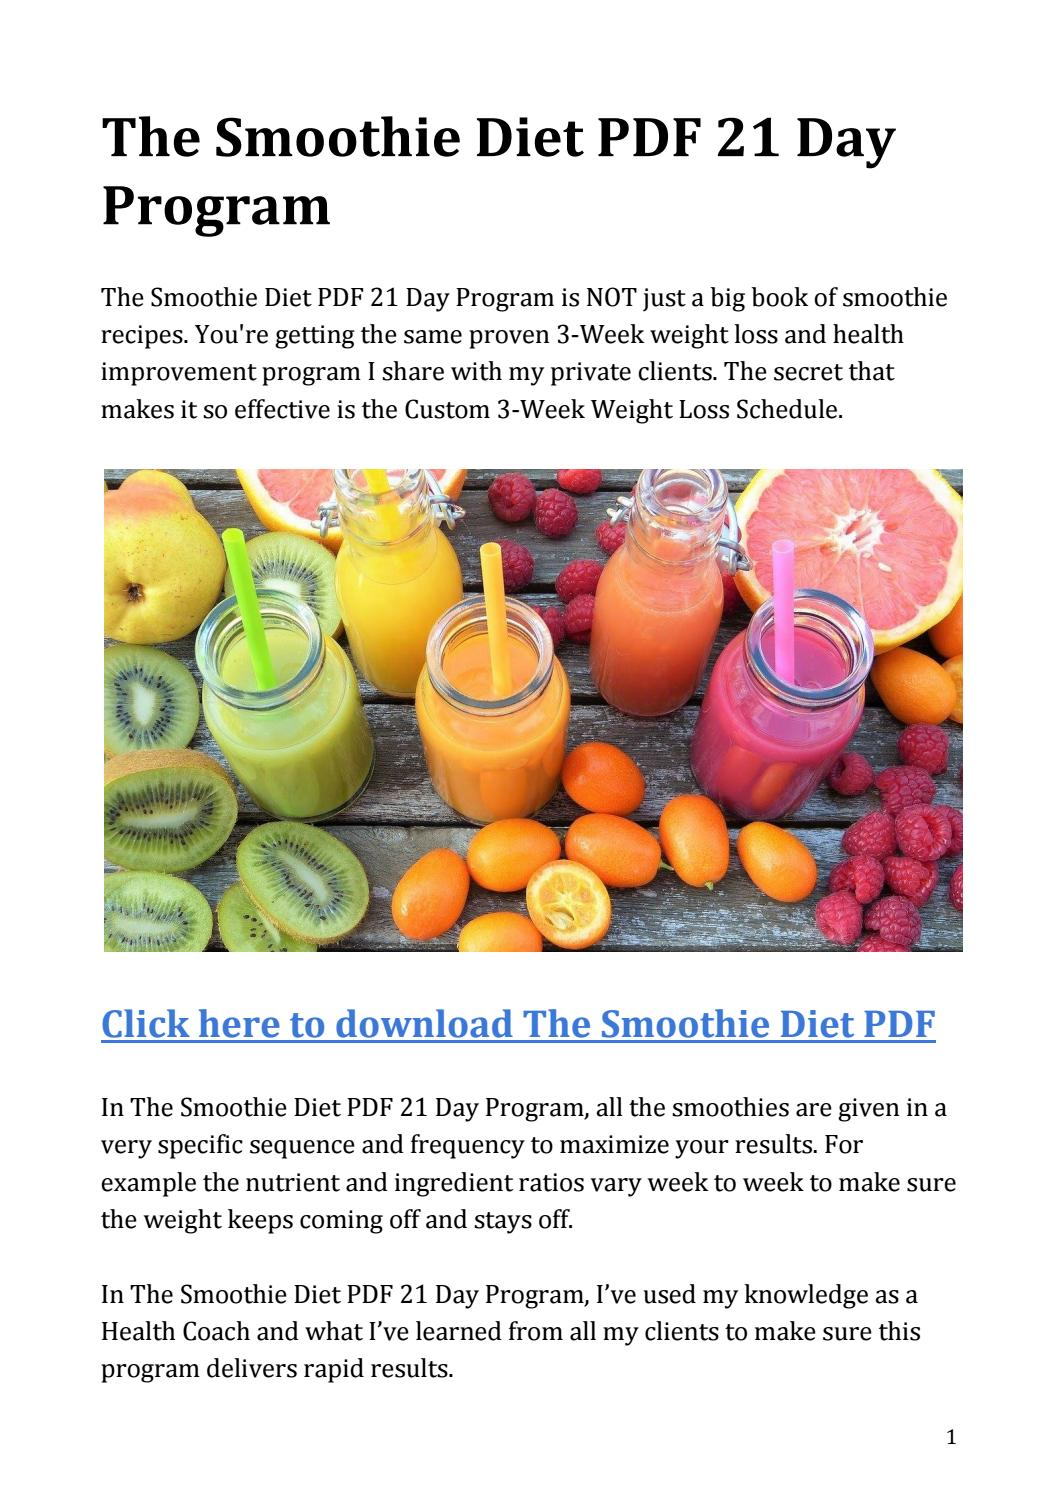 The Smoothie Diet Pdf 21 Day Program Download By Massimo Sereni Issuu